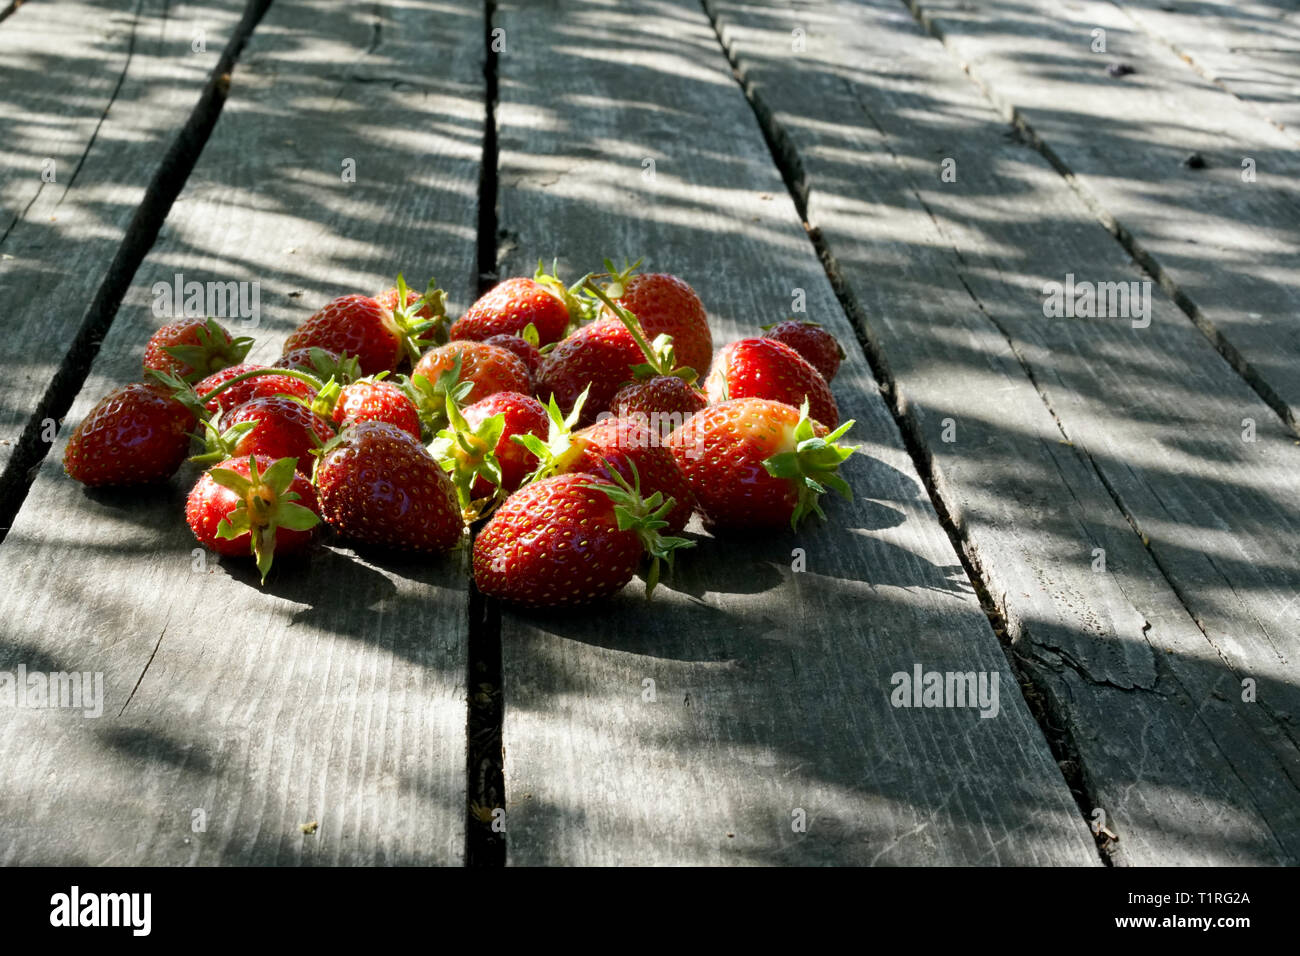 Strawberry on rustic wooden table close up - Stock Image